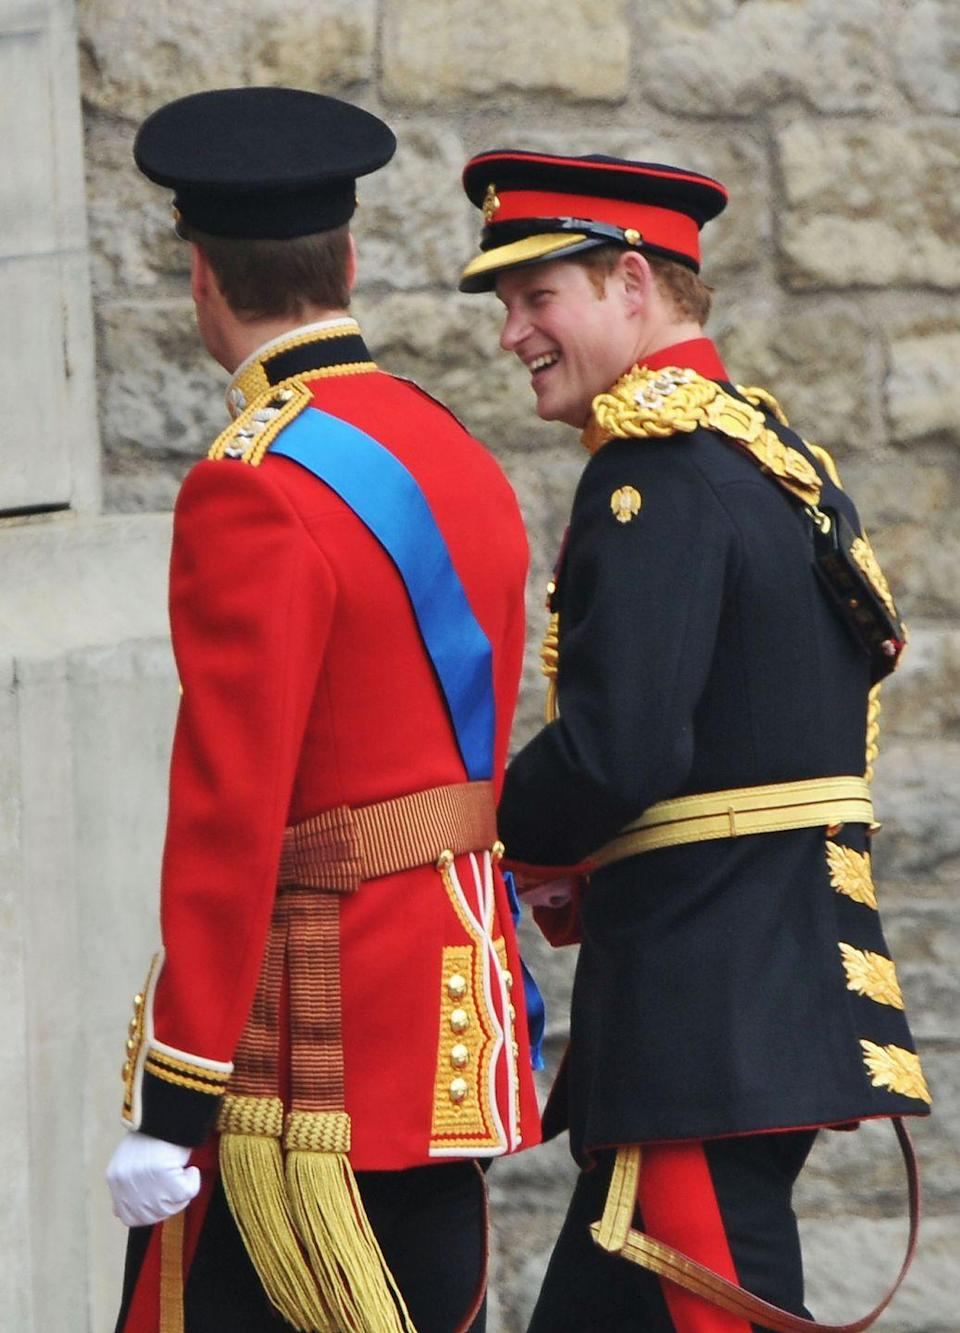 """<p>In an effort to get the party started, Prince Harry <a href=""""http://www.dailymail.co.uk/news/article-1384720/Prince-Harry-Was-3am-balcony-leap-reason-Harry-looked-par-Royal-Wedding.html"""" rel=""""nofollow noopener"""" target=""""_blank"""" data-ylk=""""slk:reportedly"""" class=""""link rapid-noclick-resp"""">reportedly</a> stayed up until 3 a.m. the night before his brother's royal wedding, and also casually jumped off a veranda balcony at the Goring Hotel—injuring his foot in the process. IS THERE NOTHING THIS MAN WON'T DO IN THE NAME OF FUN?</p>"""